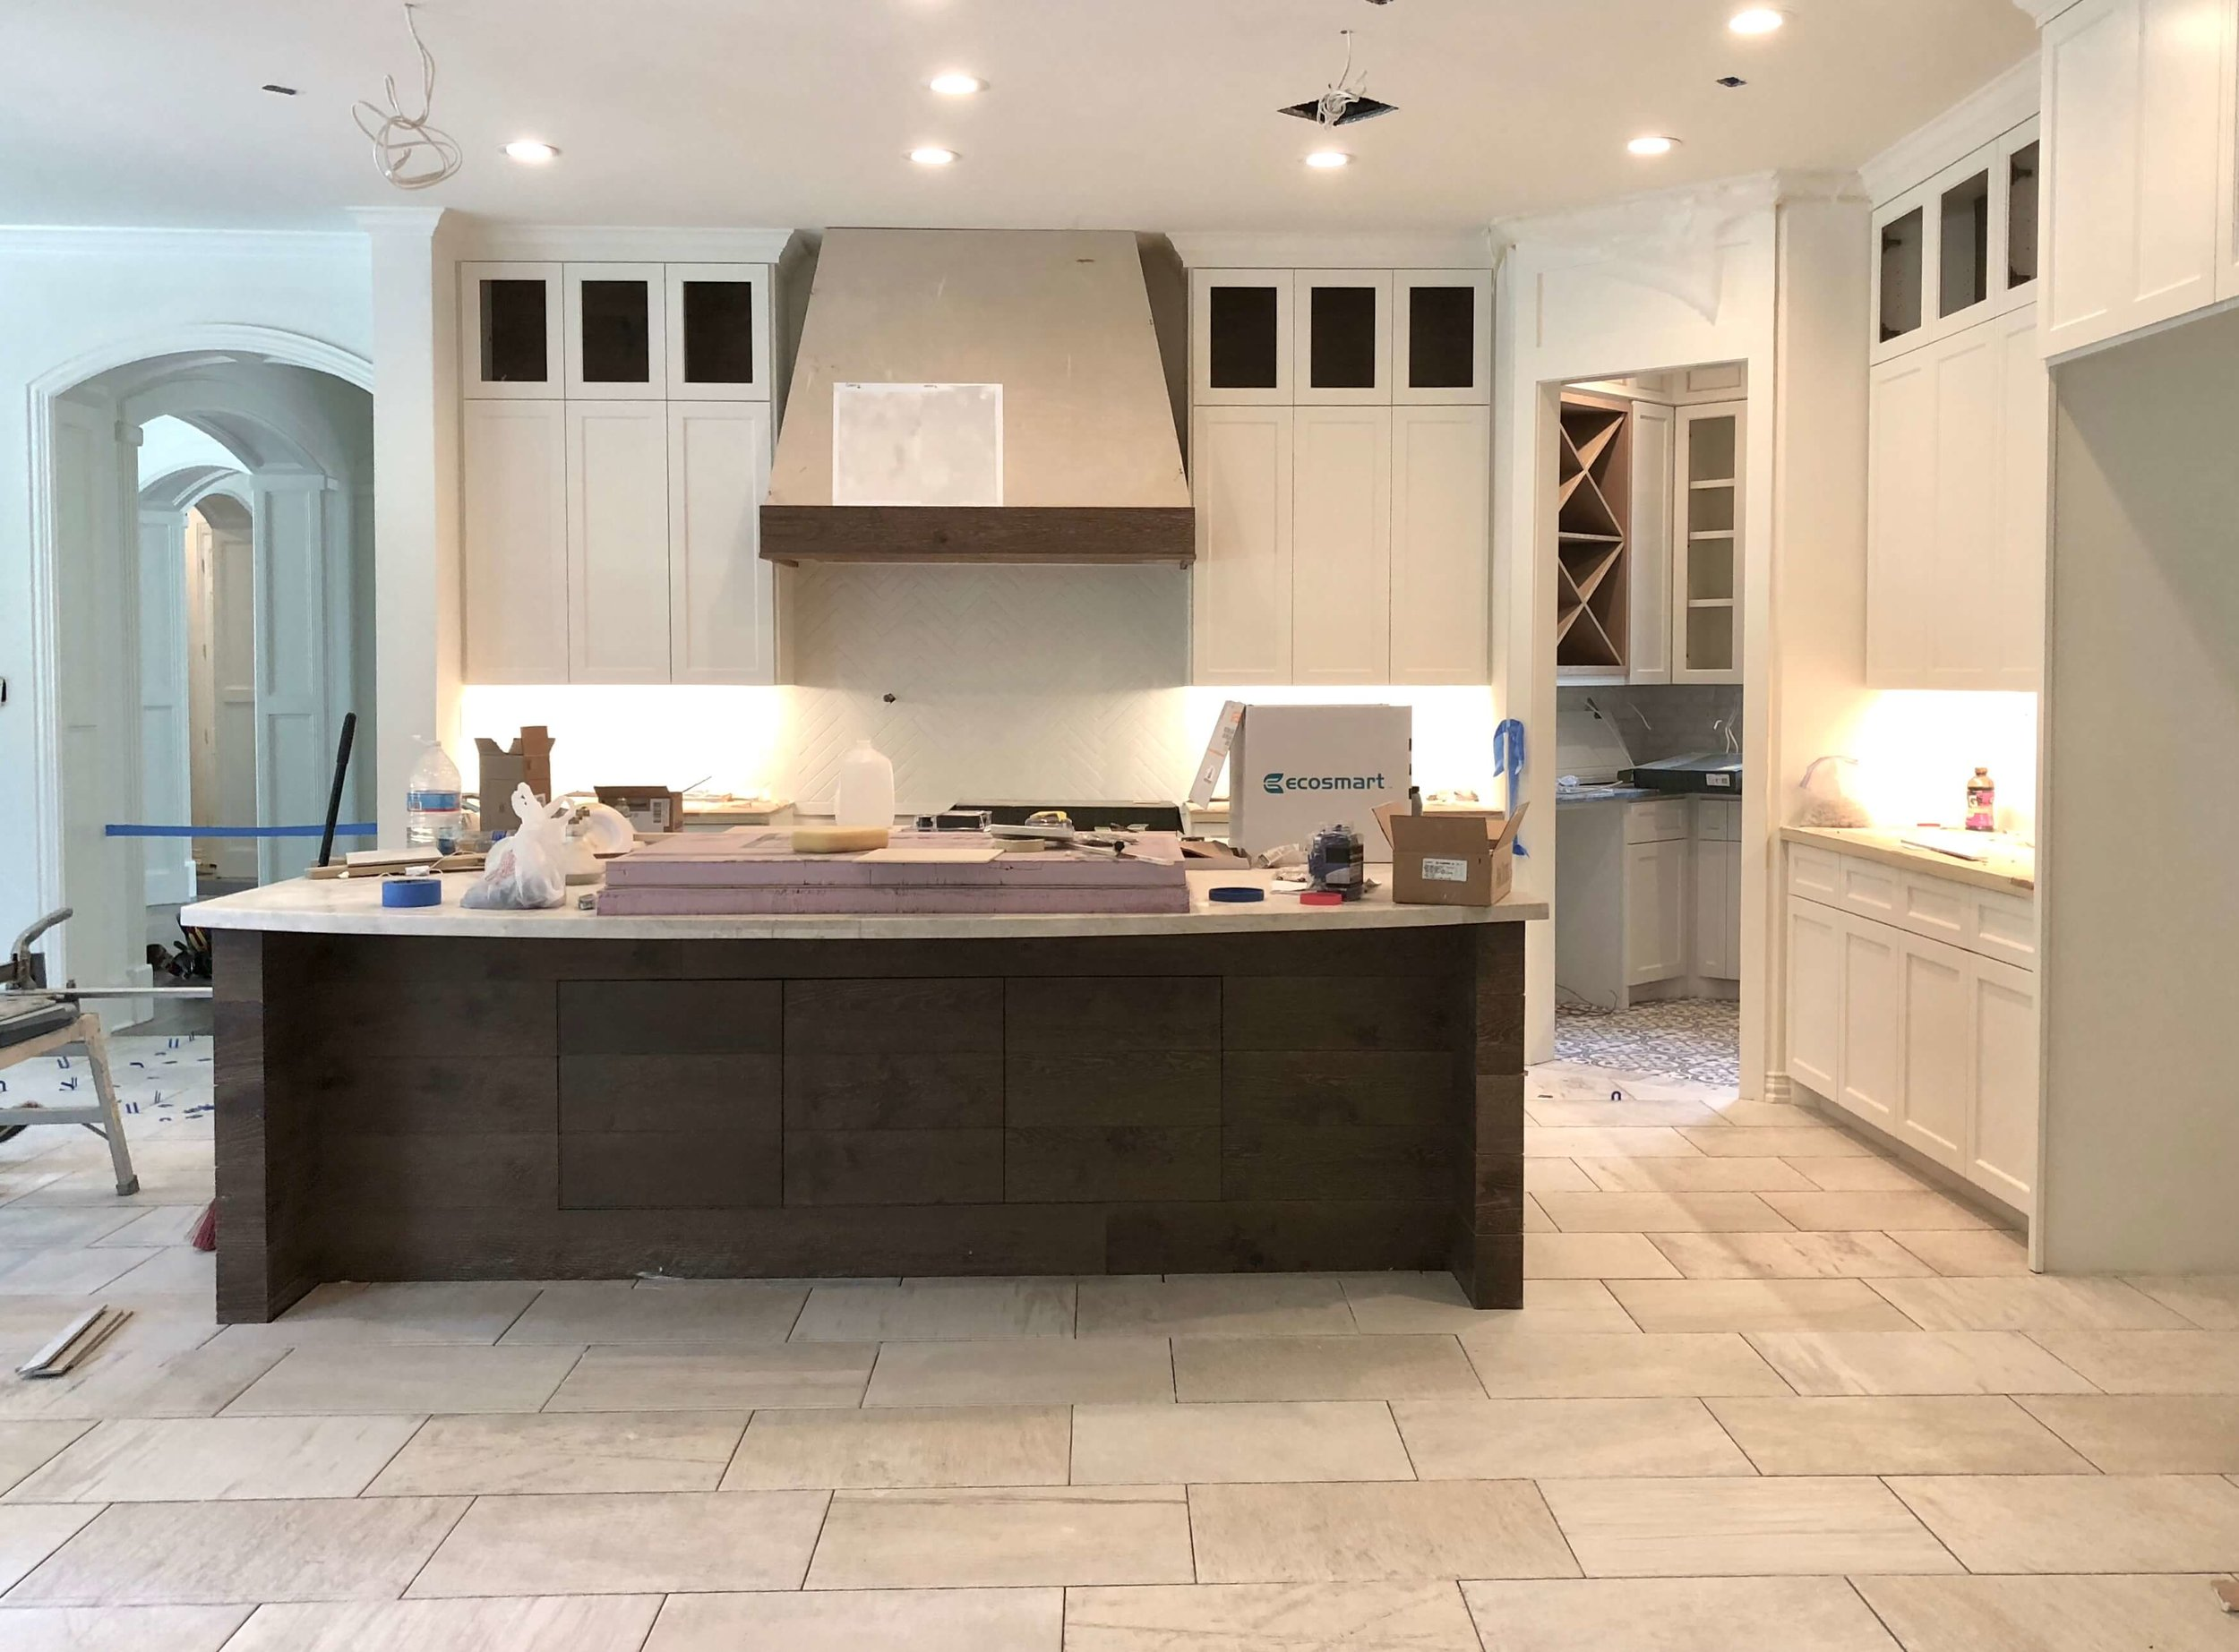 Kitchen remodel in progress with white cabinetry and wood tone kitchen island | Carla Aston, Designer #kitchenremodel #kitchenisland